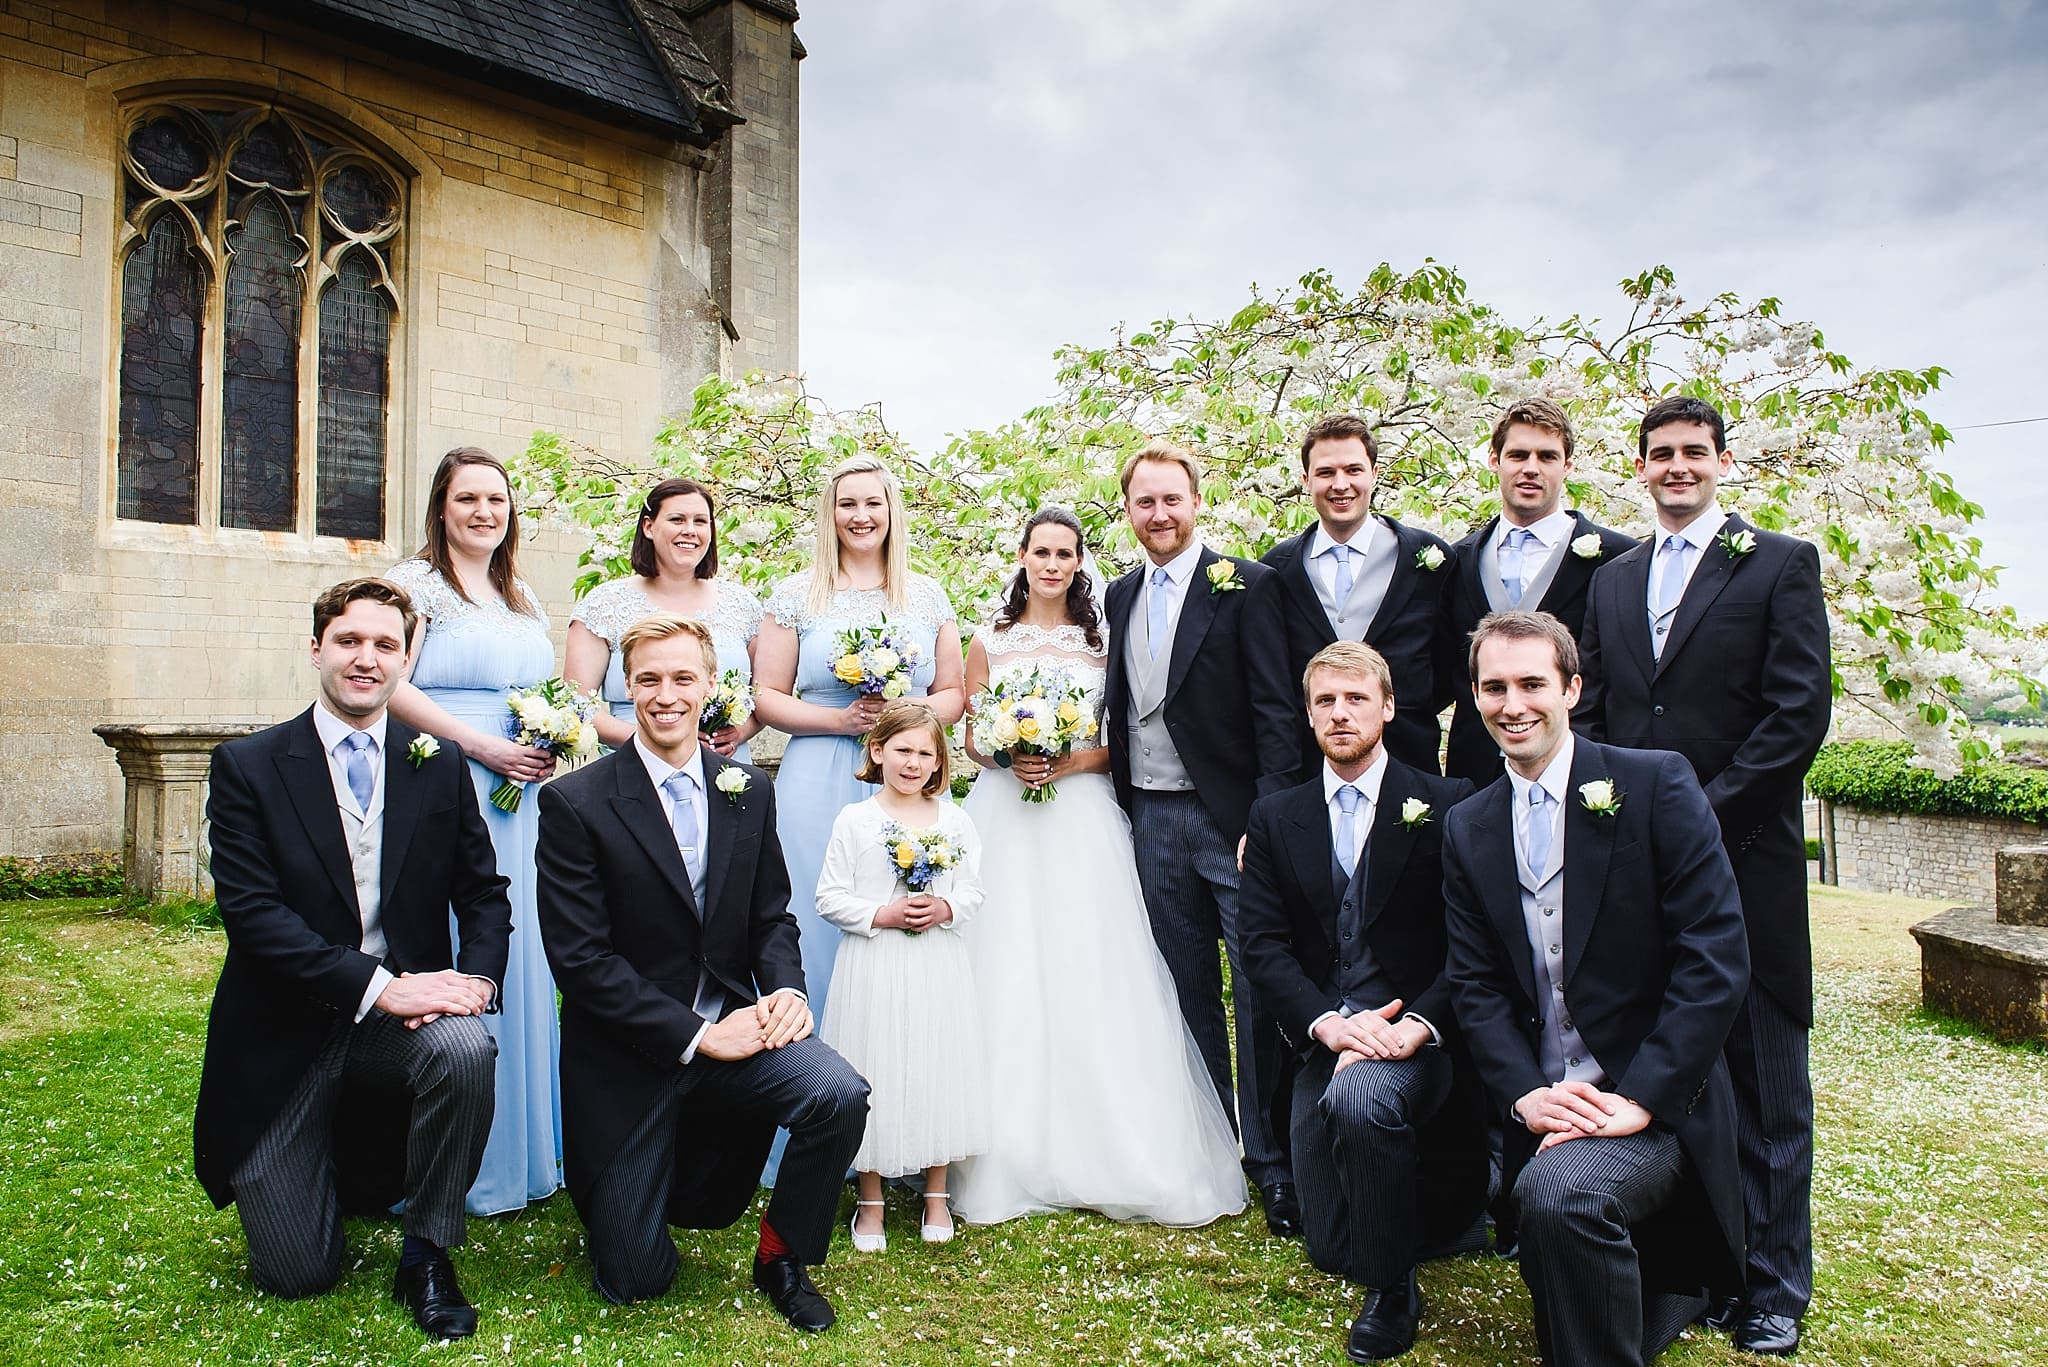 Mixed wedding party photo outside St Swithins church, Bathford